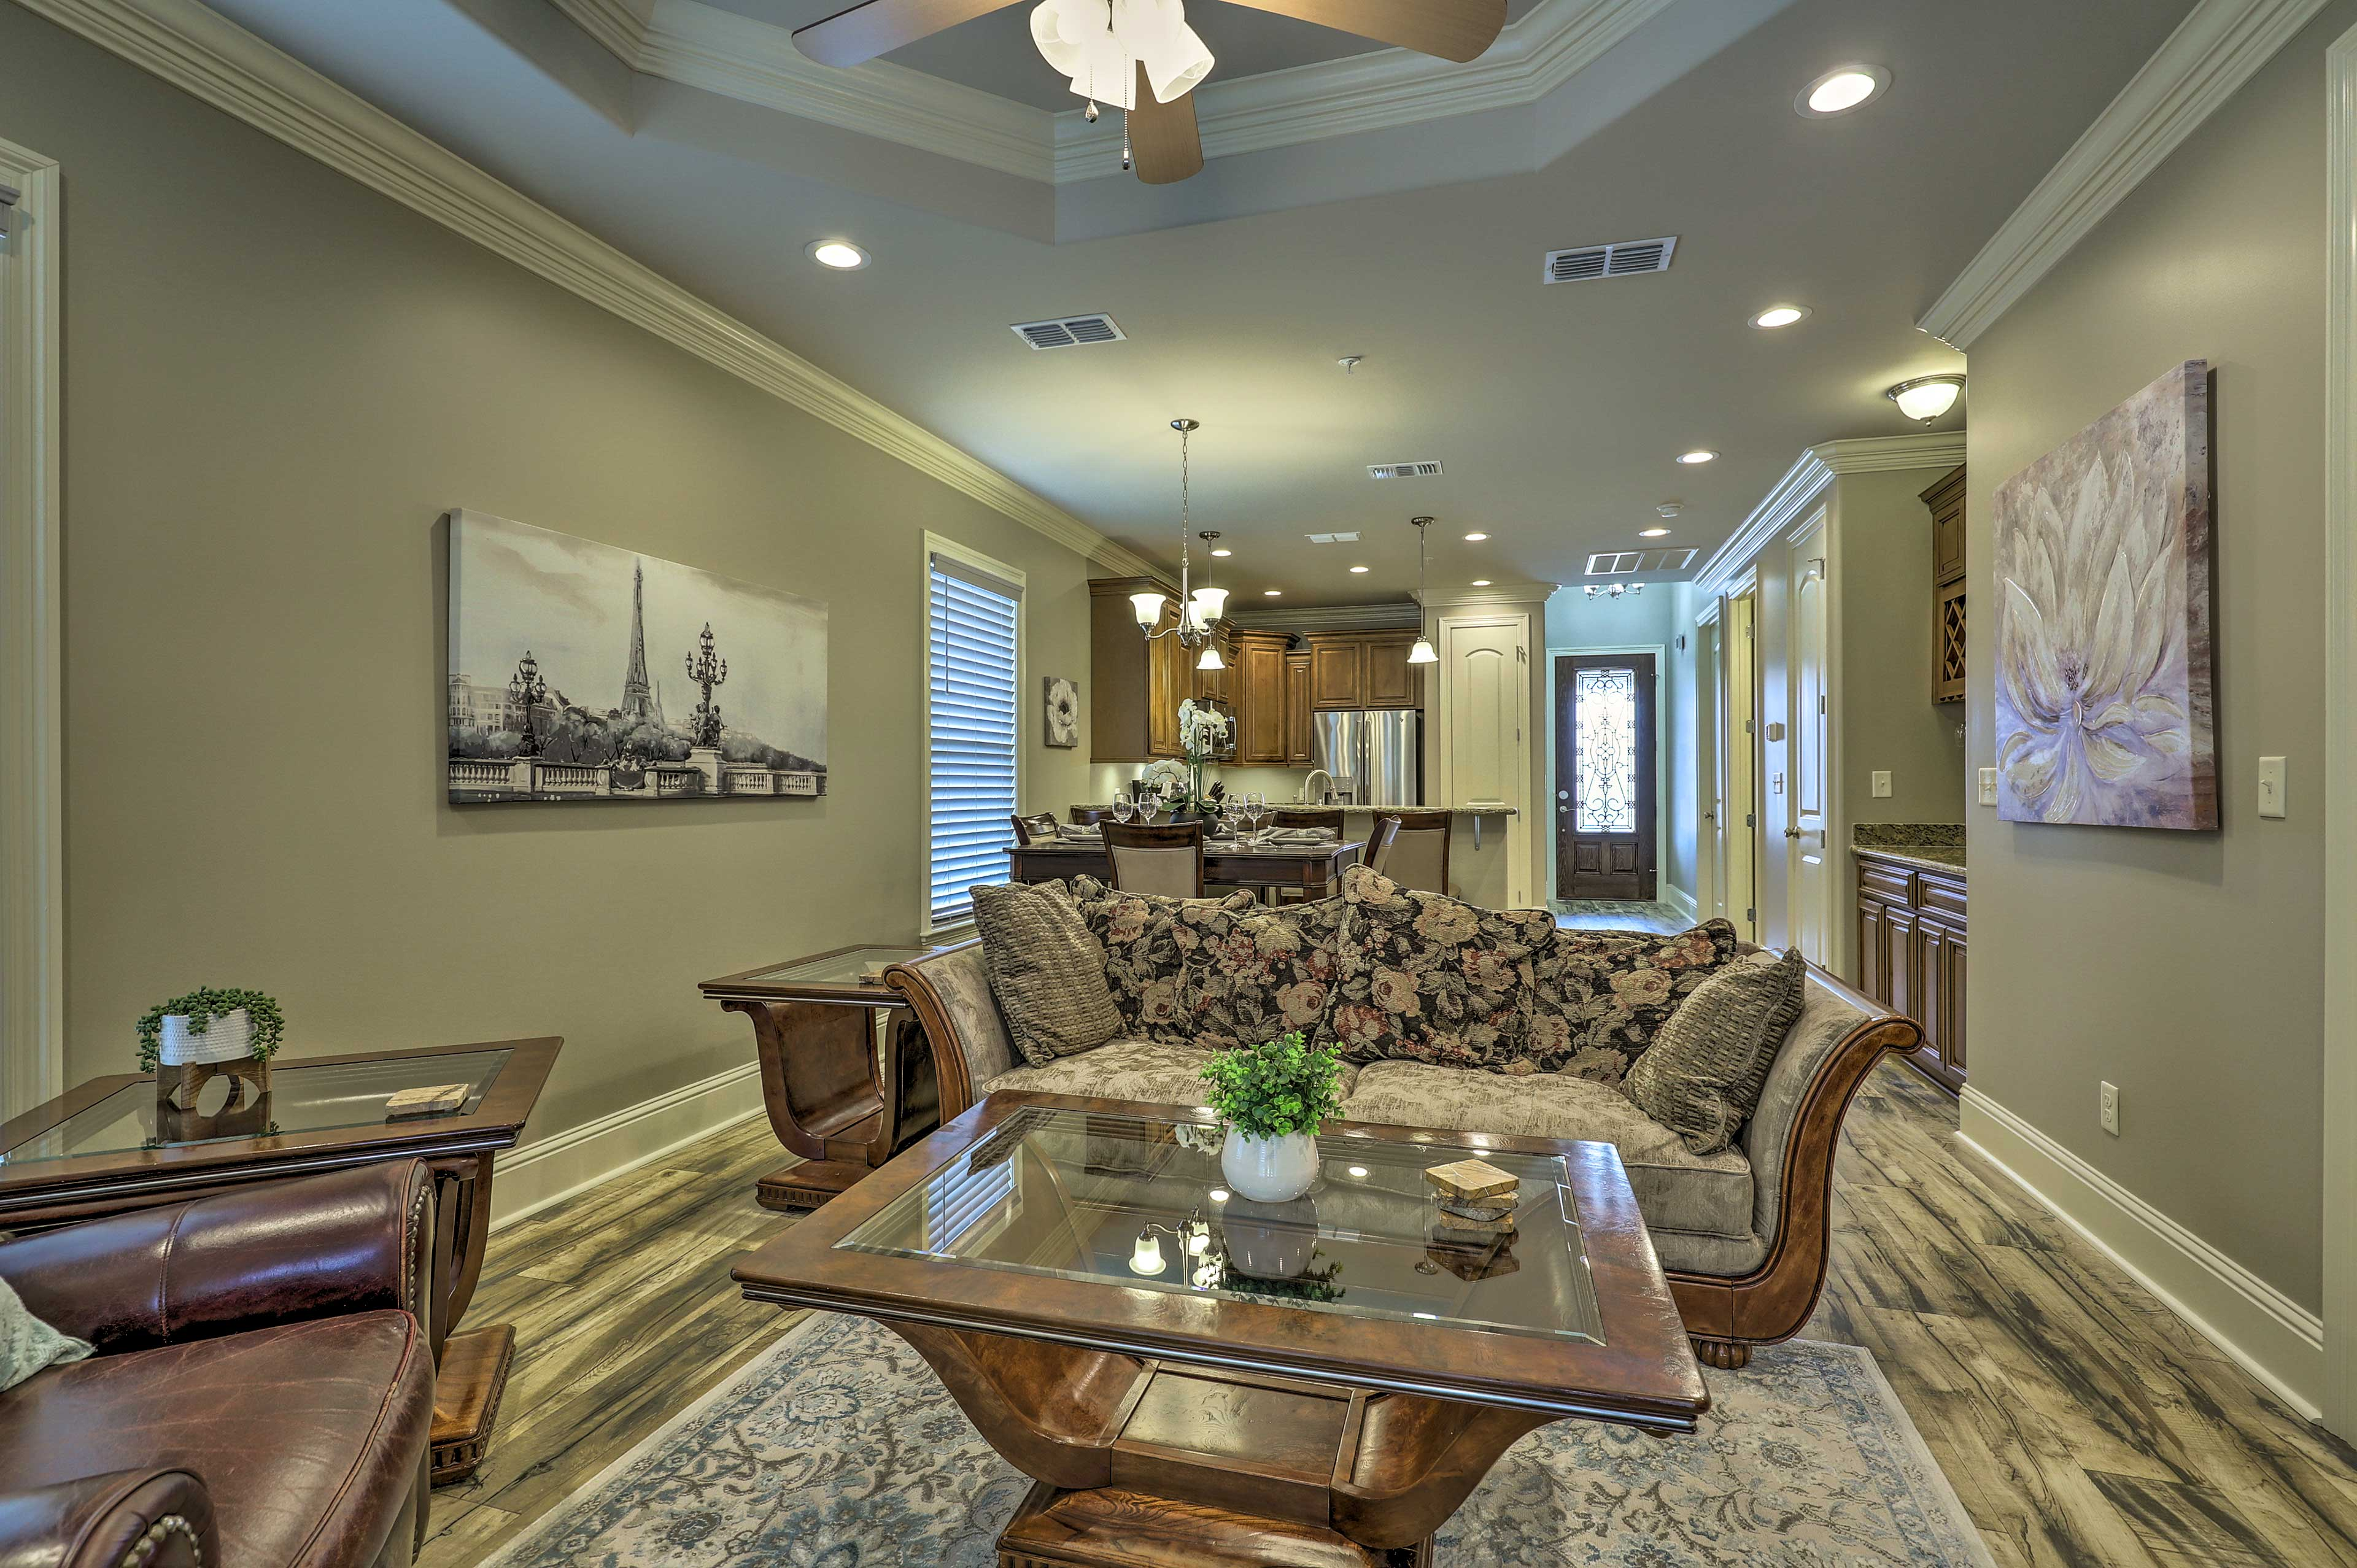 Find a home-away-from-home at this charming Diamondhead condo!